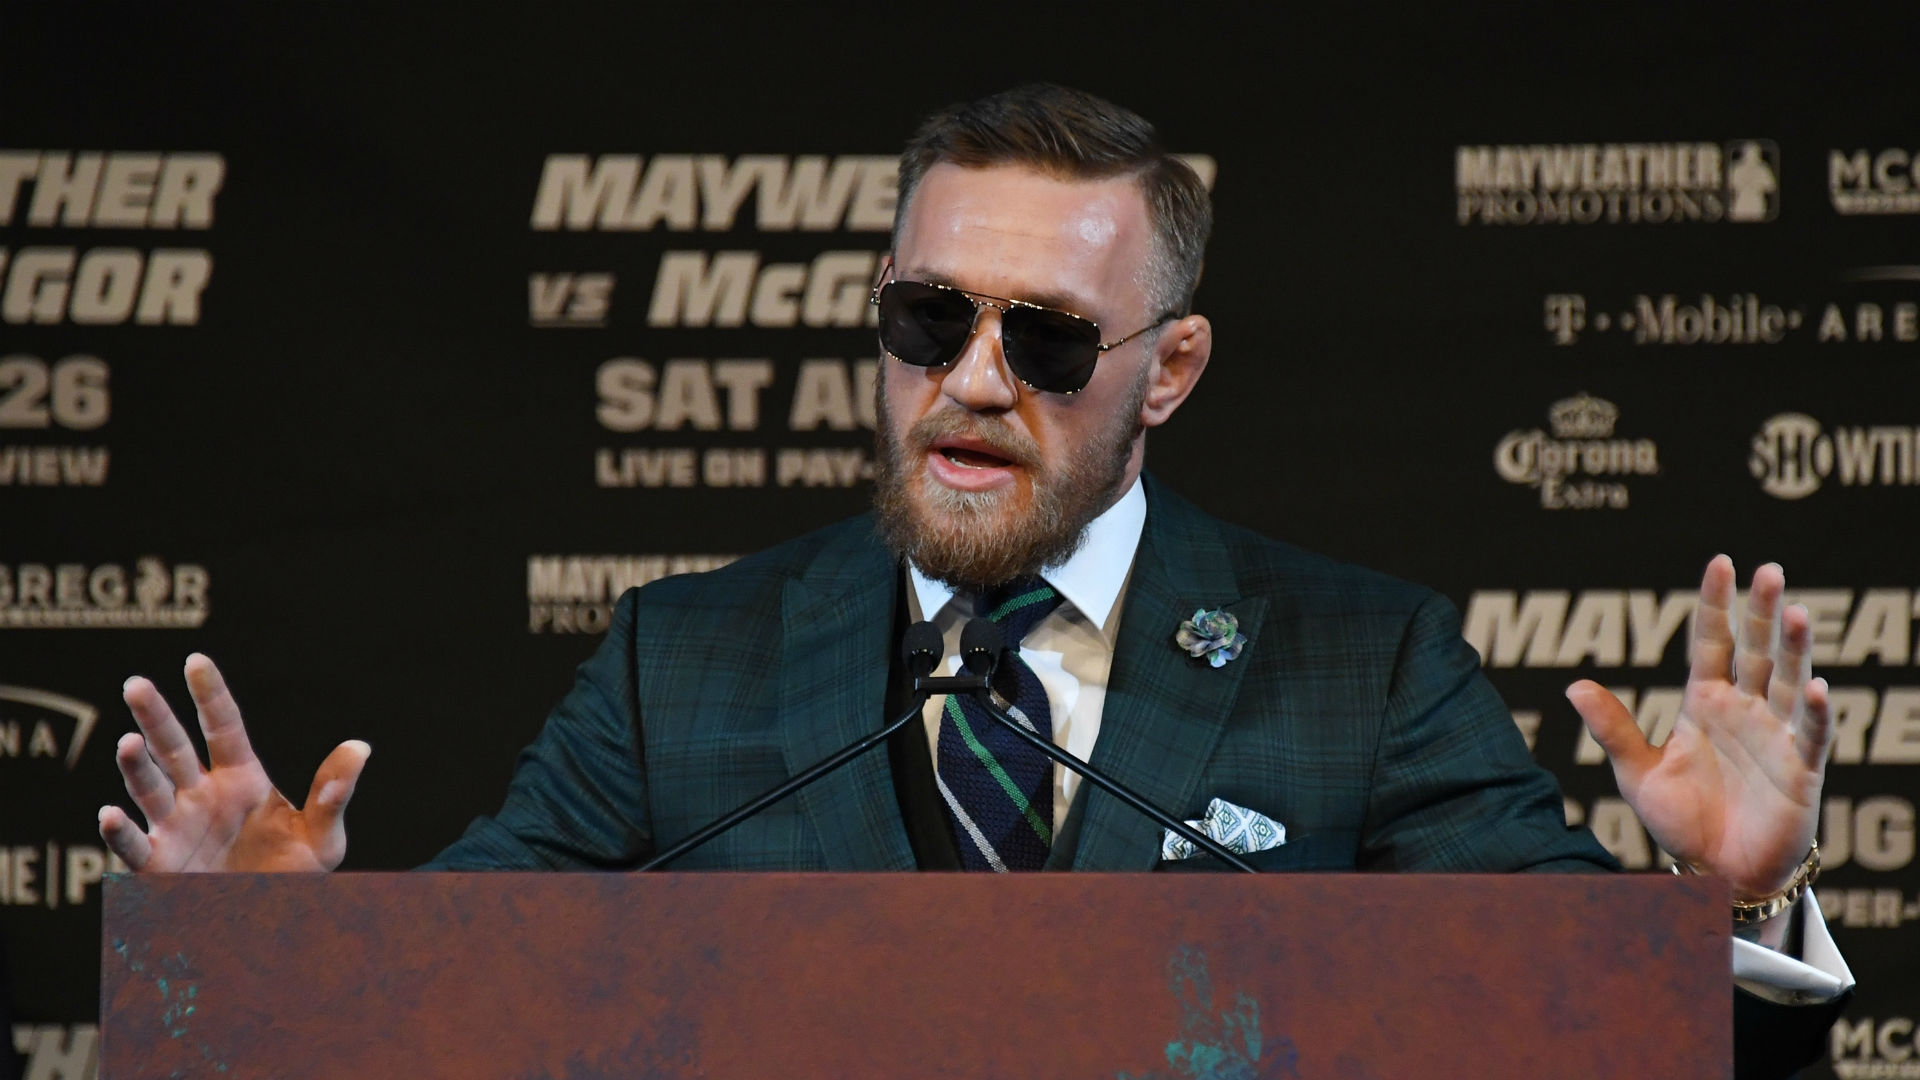 Video Shows View From Inside Bus As Conor McGregor Throws Dolly